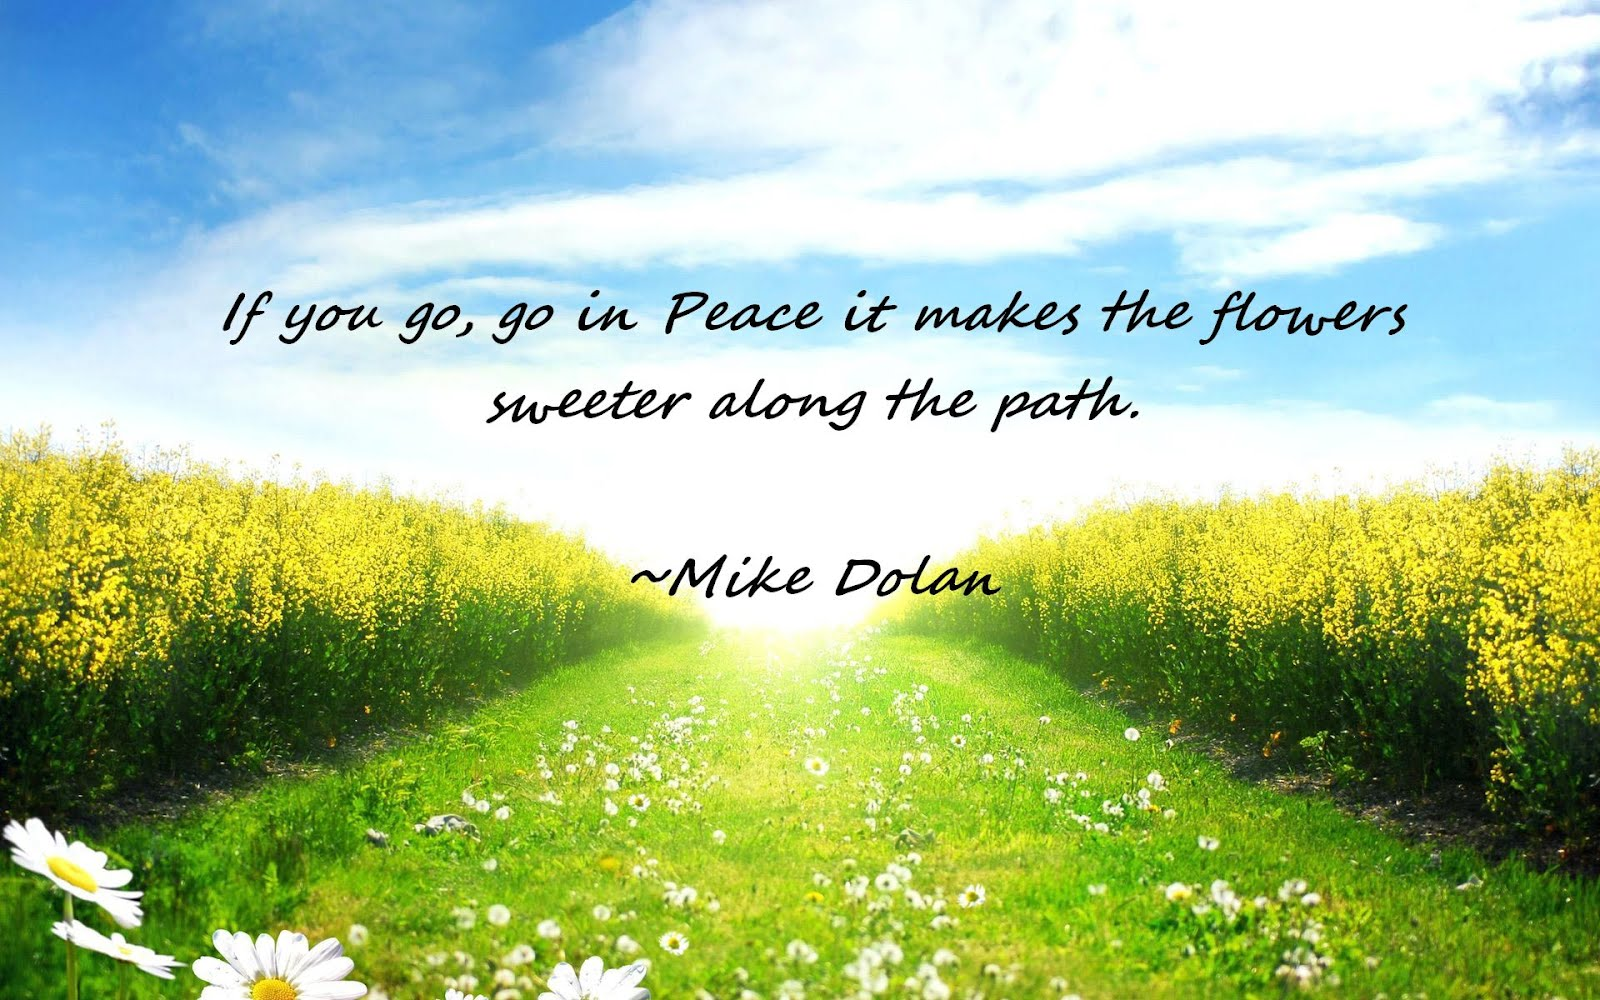 If you go, go in Peace it makes the flowers sweeter along the path.""